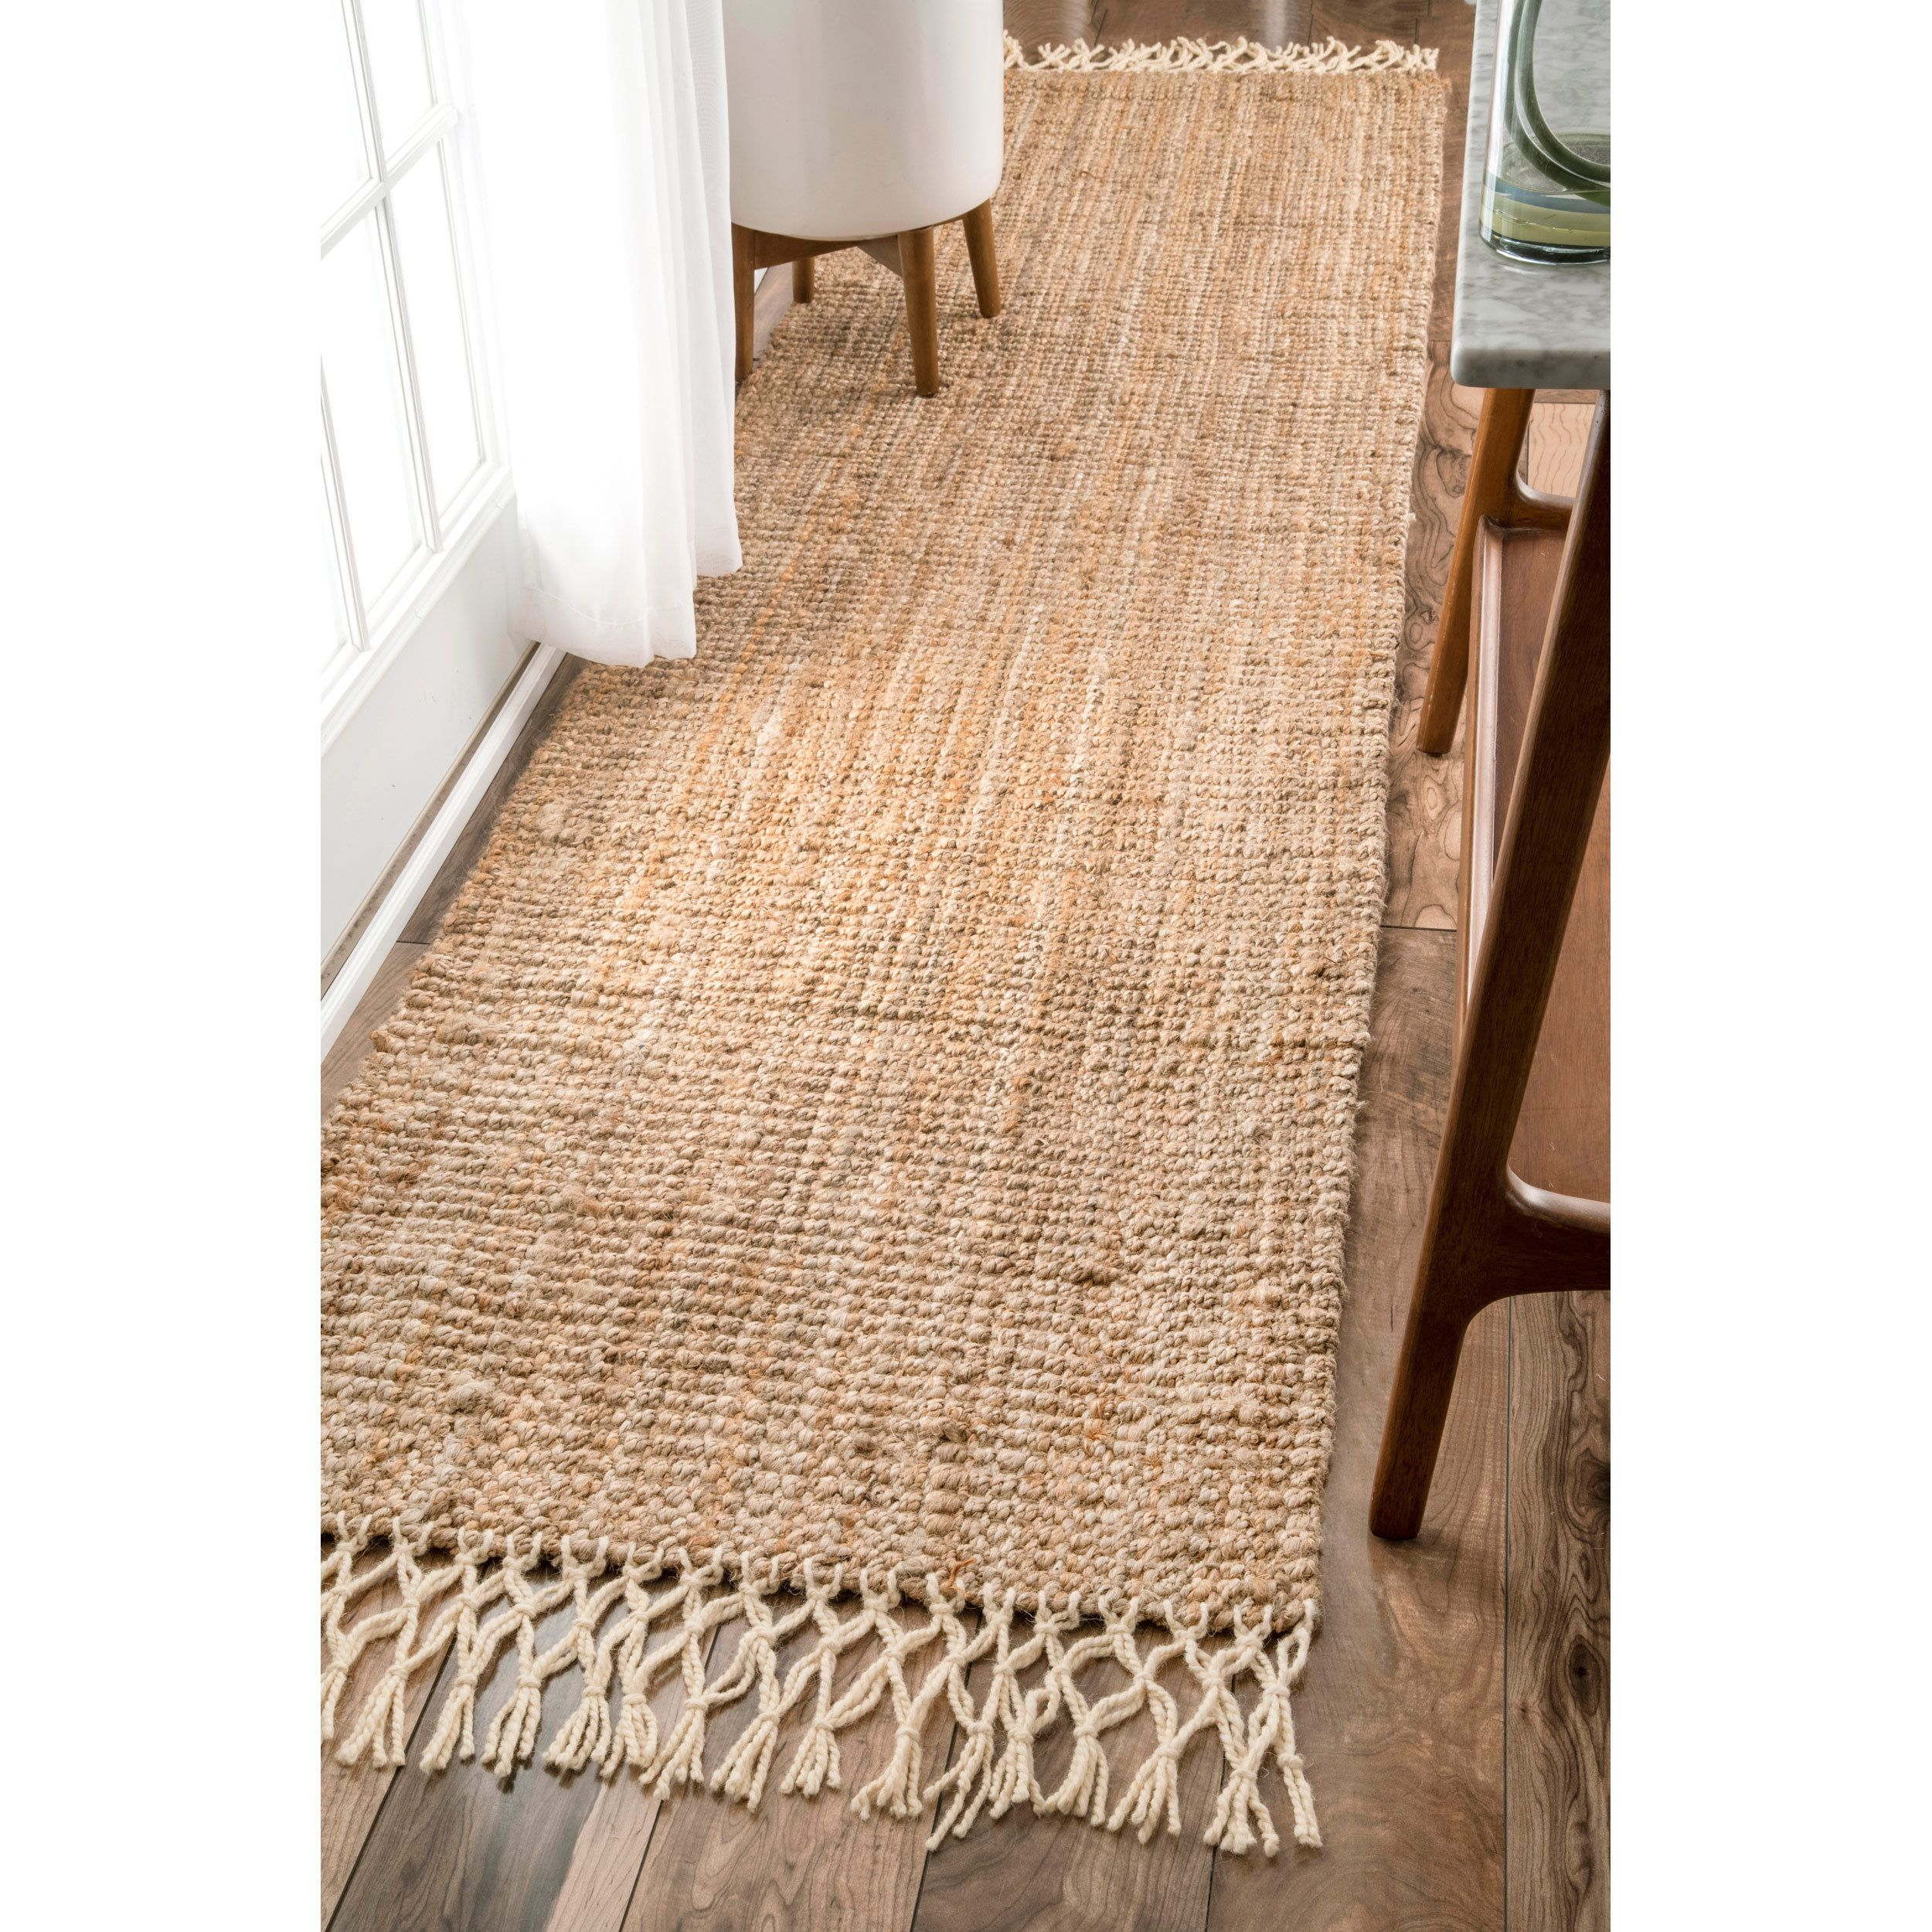 Sol En Fibre Naturelle the gray barn antelope springs chunky jute and wool tassel